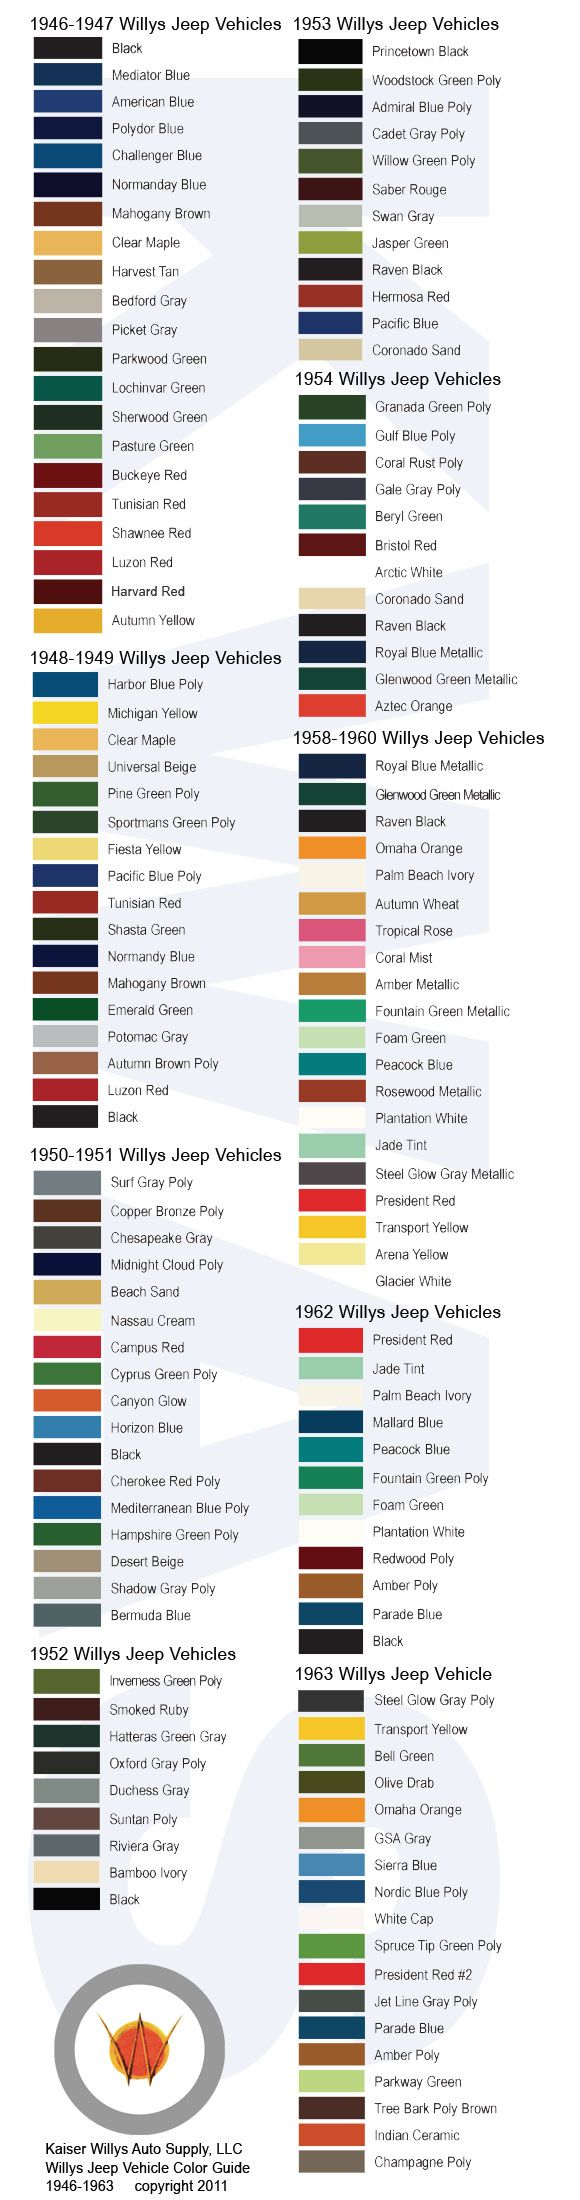 Kaiser Willys Jeep Vehicle Color Guide 1946 1963 Jeeps Jeep